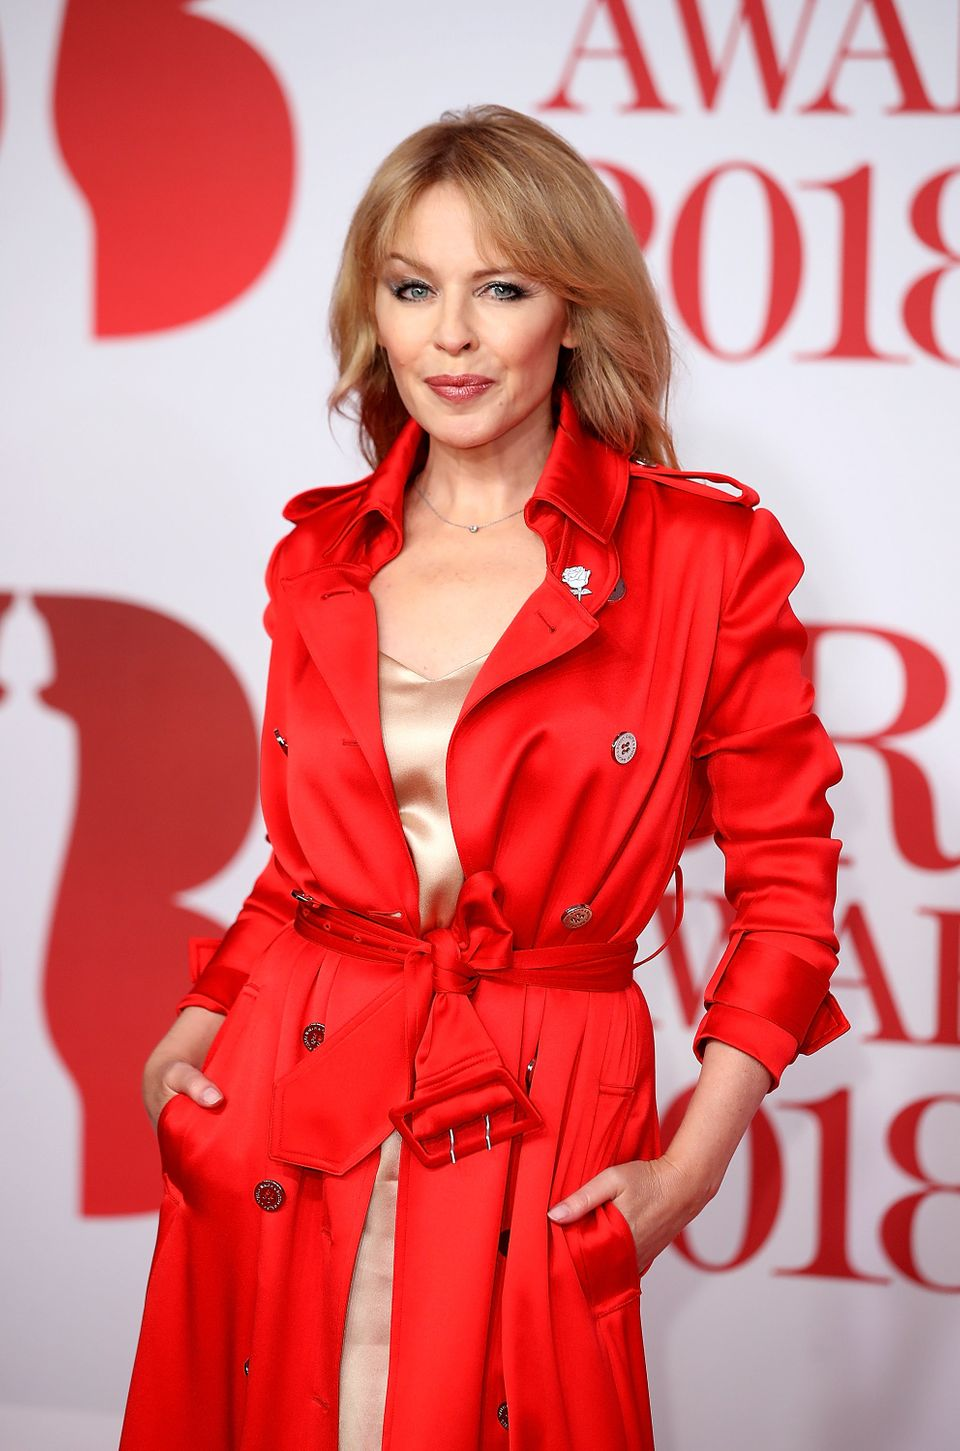 Brit Awards 2018: Millie Bobby Brown, Kylie Minogue And Stormzy Led the Best Dressed On The Red